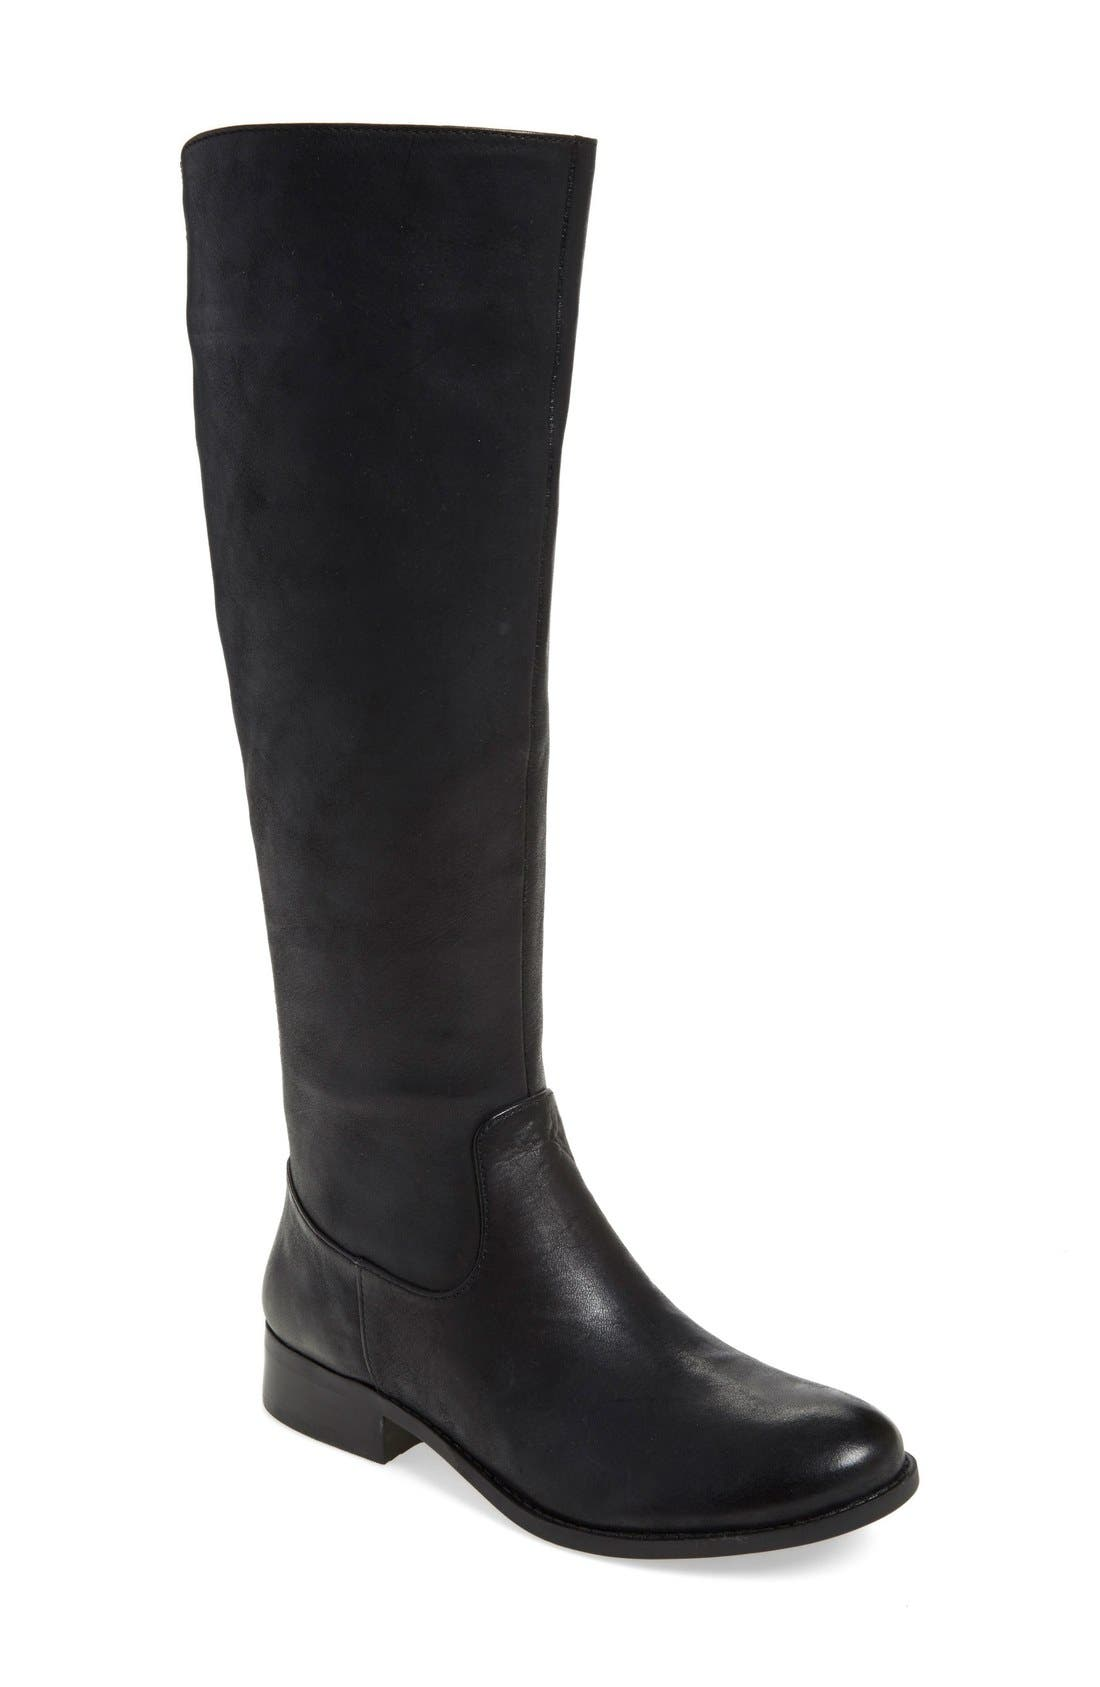 JESSICA SIMPSON,                             'Ressie' Riding Boot,                             Main thumbnail 1, color,                             001